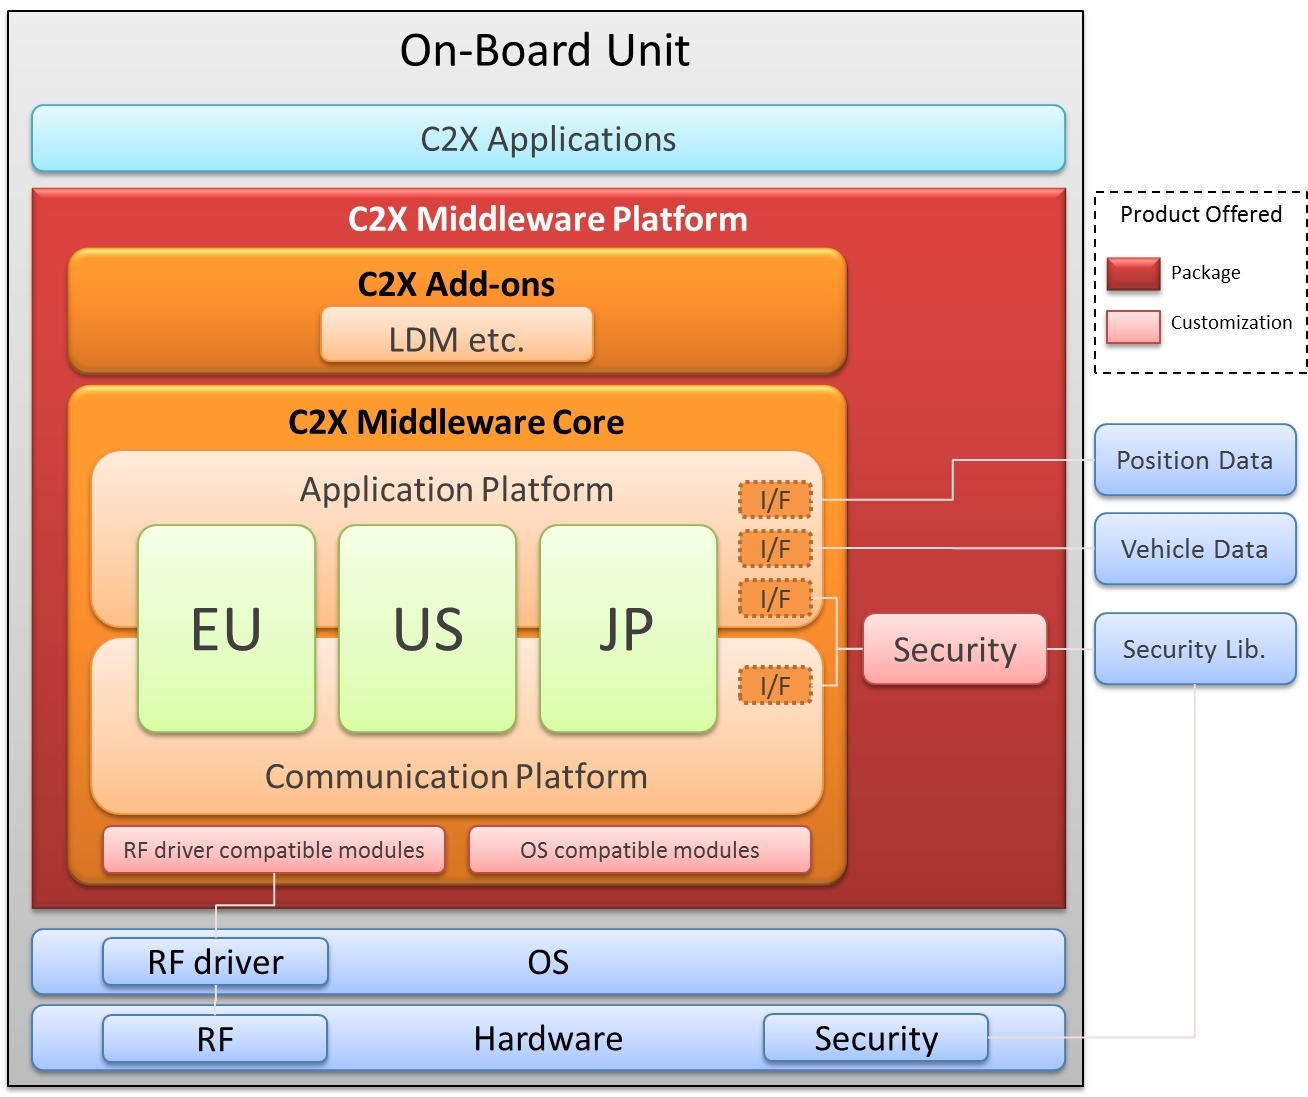 Hitachi C2X middleware platform supports ITS standard specifications